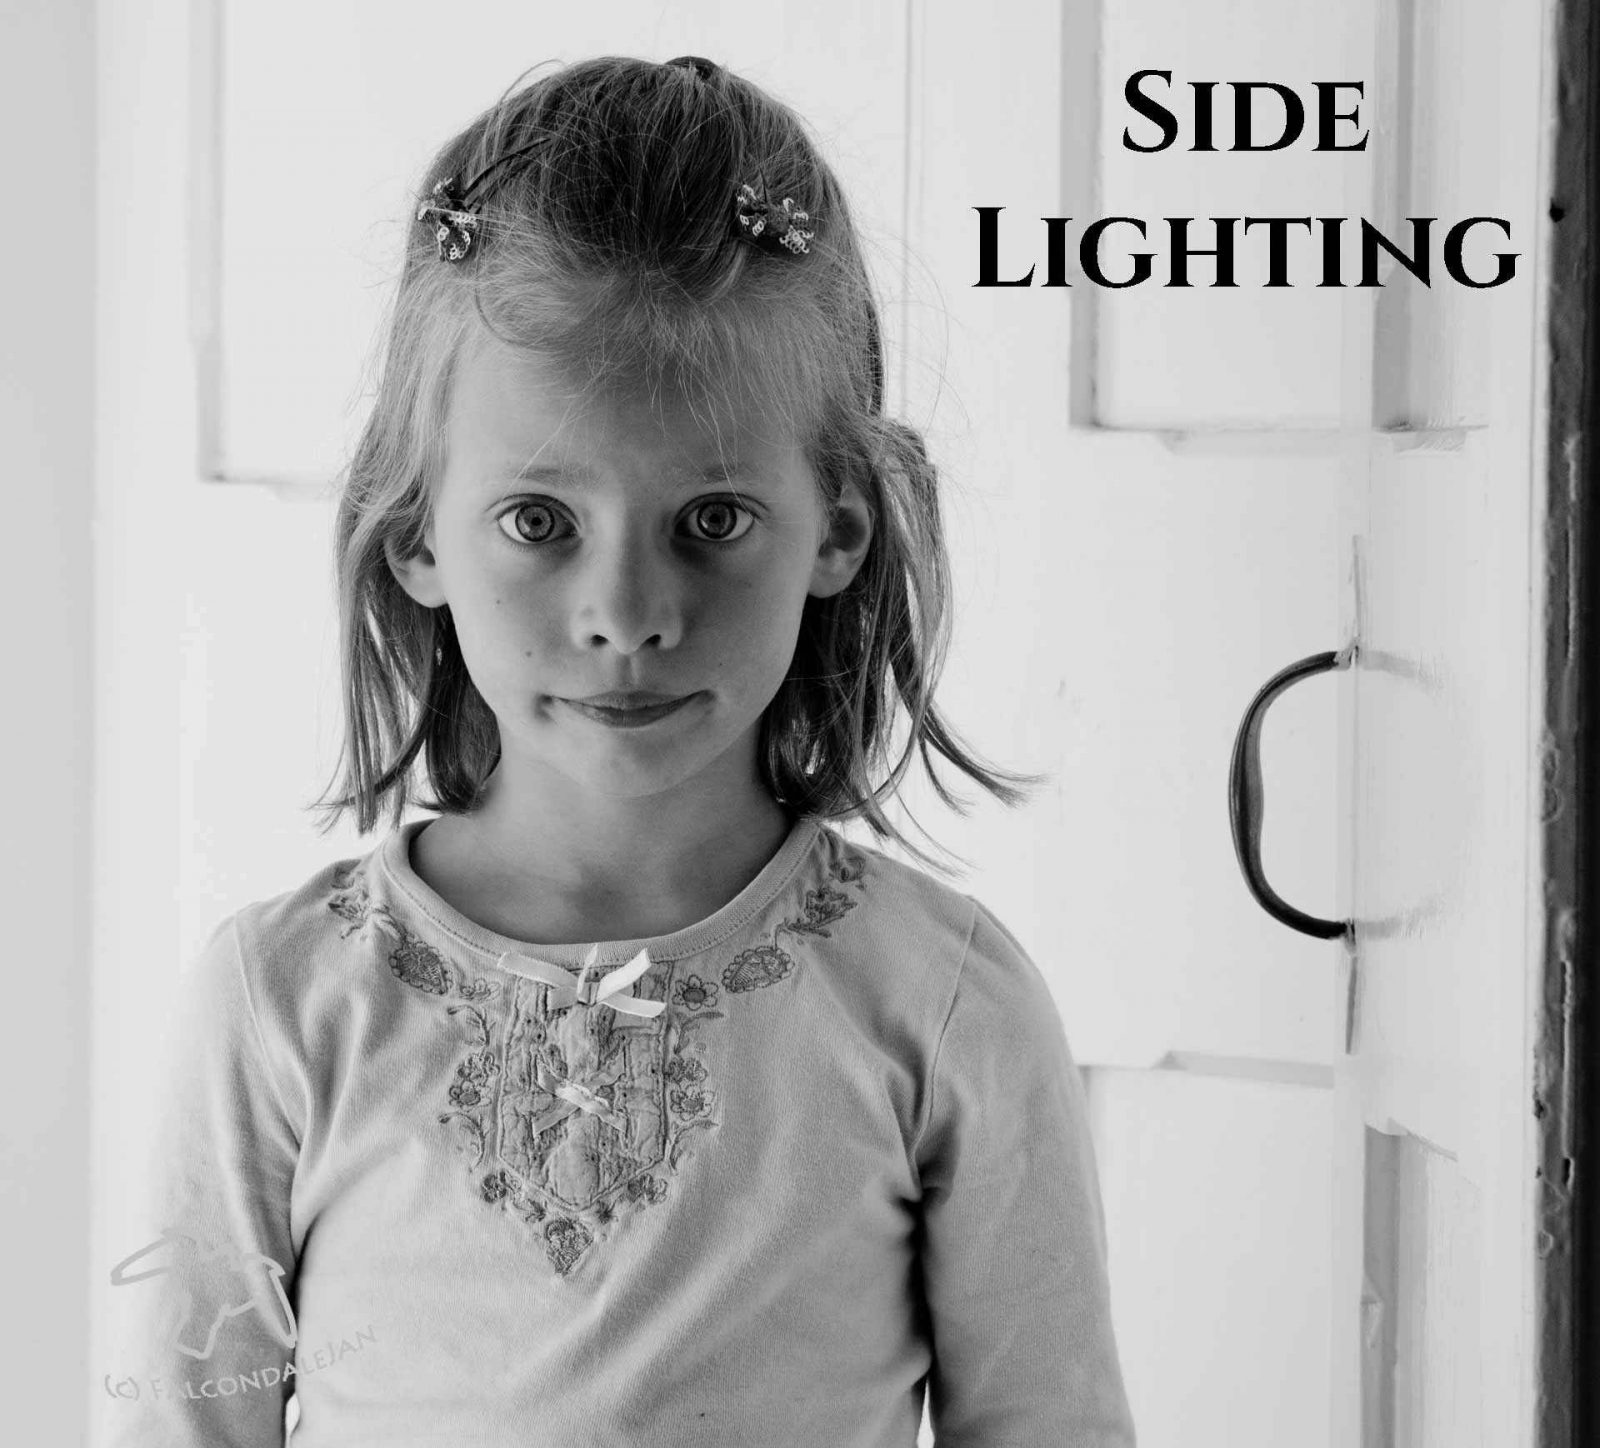 Reasons to shoot black and white part 5, Flattering portraits. More reasons to choose black and white in photography, this time to make more flattering portraits by using monochrome. Flatter skin tone and make a timeless and enduring image by switching to a black and white photo. Tips from Falcondalejan. Image description: little girl portrait, side lighting.